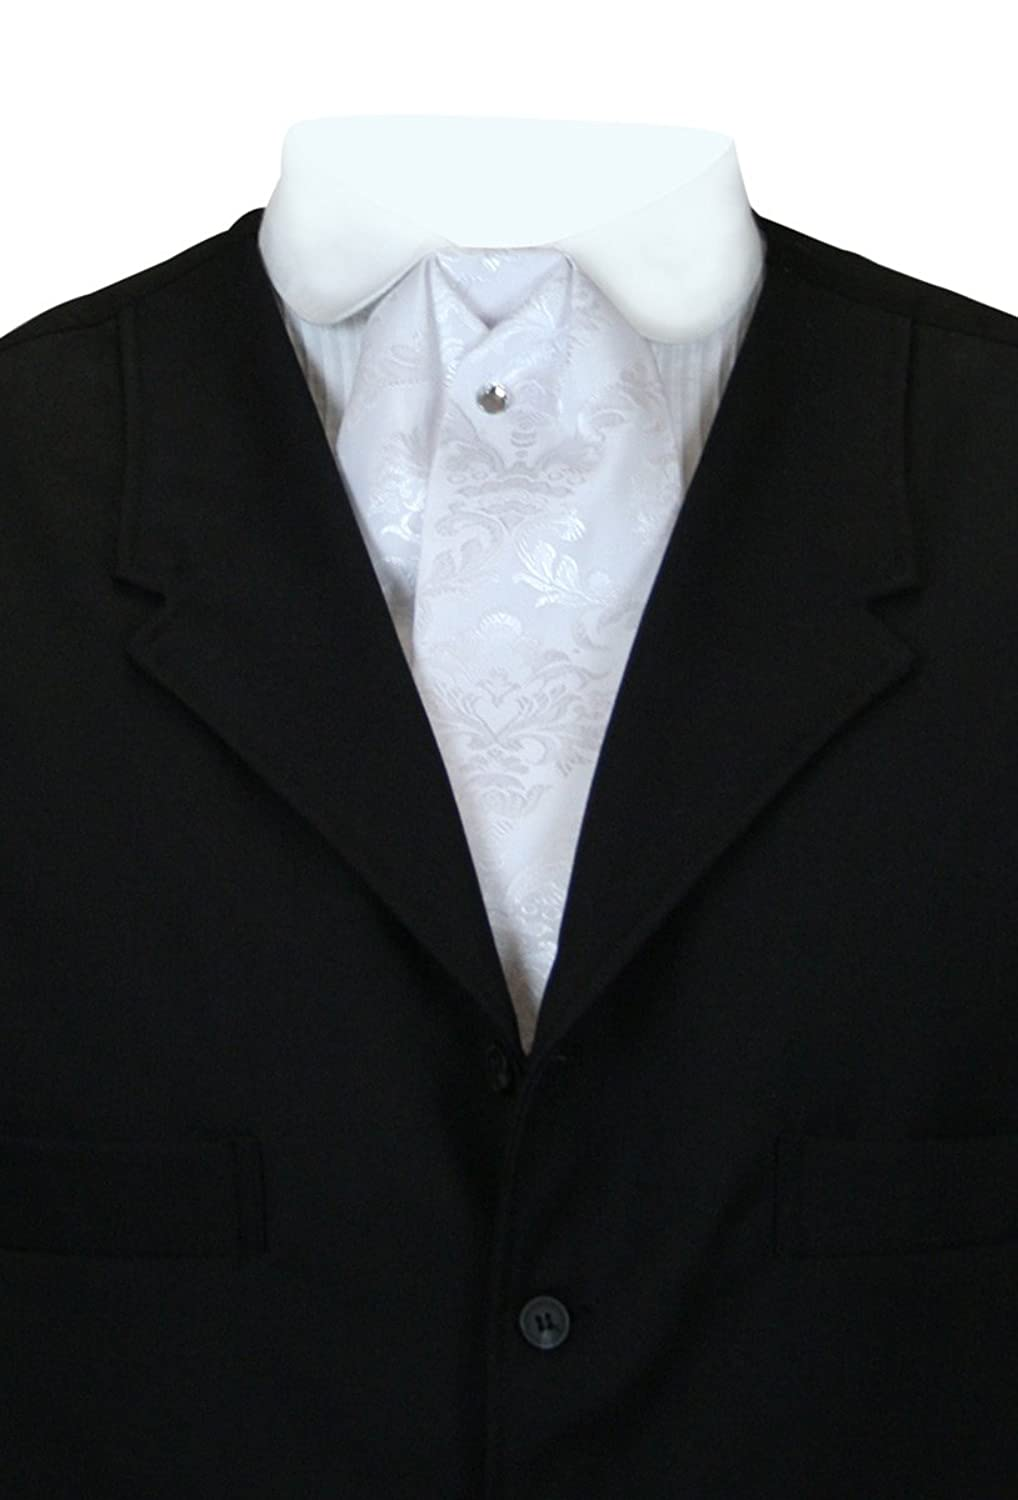 Victorian Men's Tuxedo, Tailcoats, Formalwear Guide Historical Emporium Mens Satin Floral Puff Tie $25.95 AT vintagedancer.com